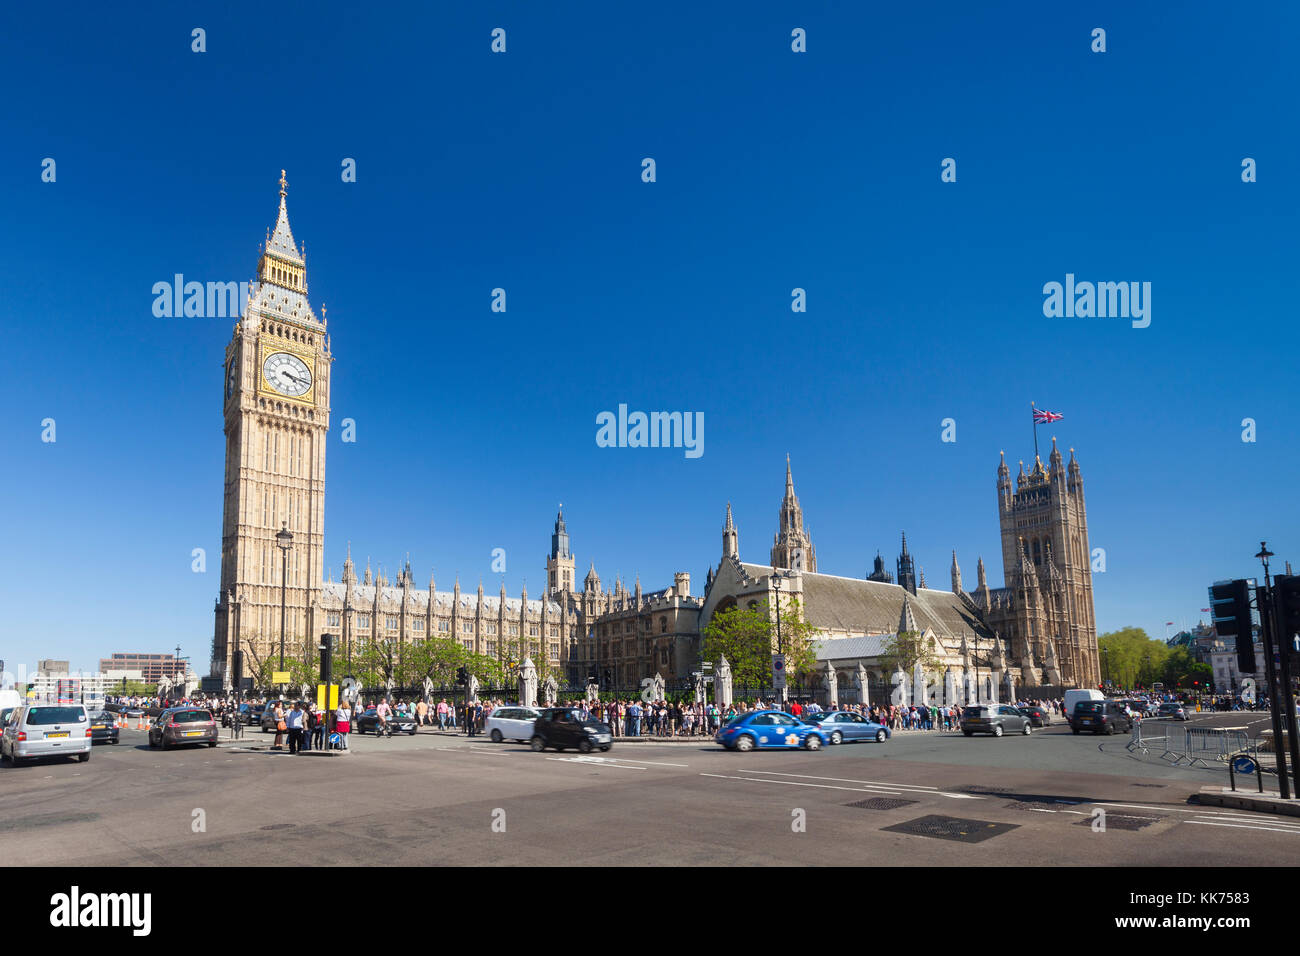 House of parliament, London, England - Stock Image